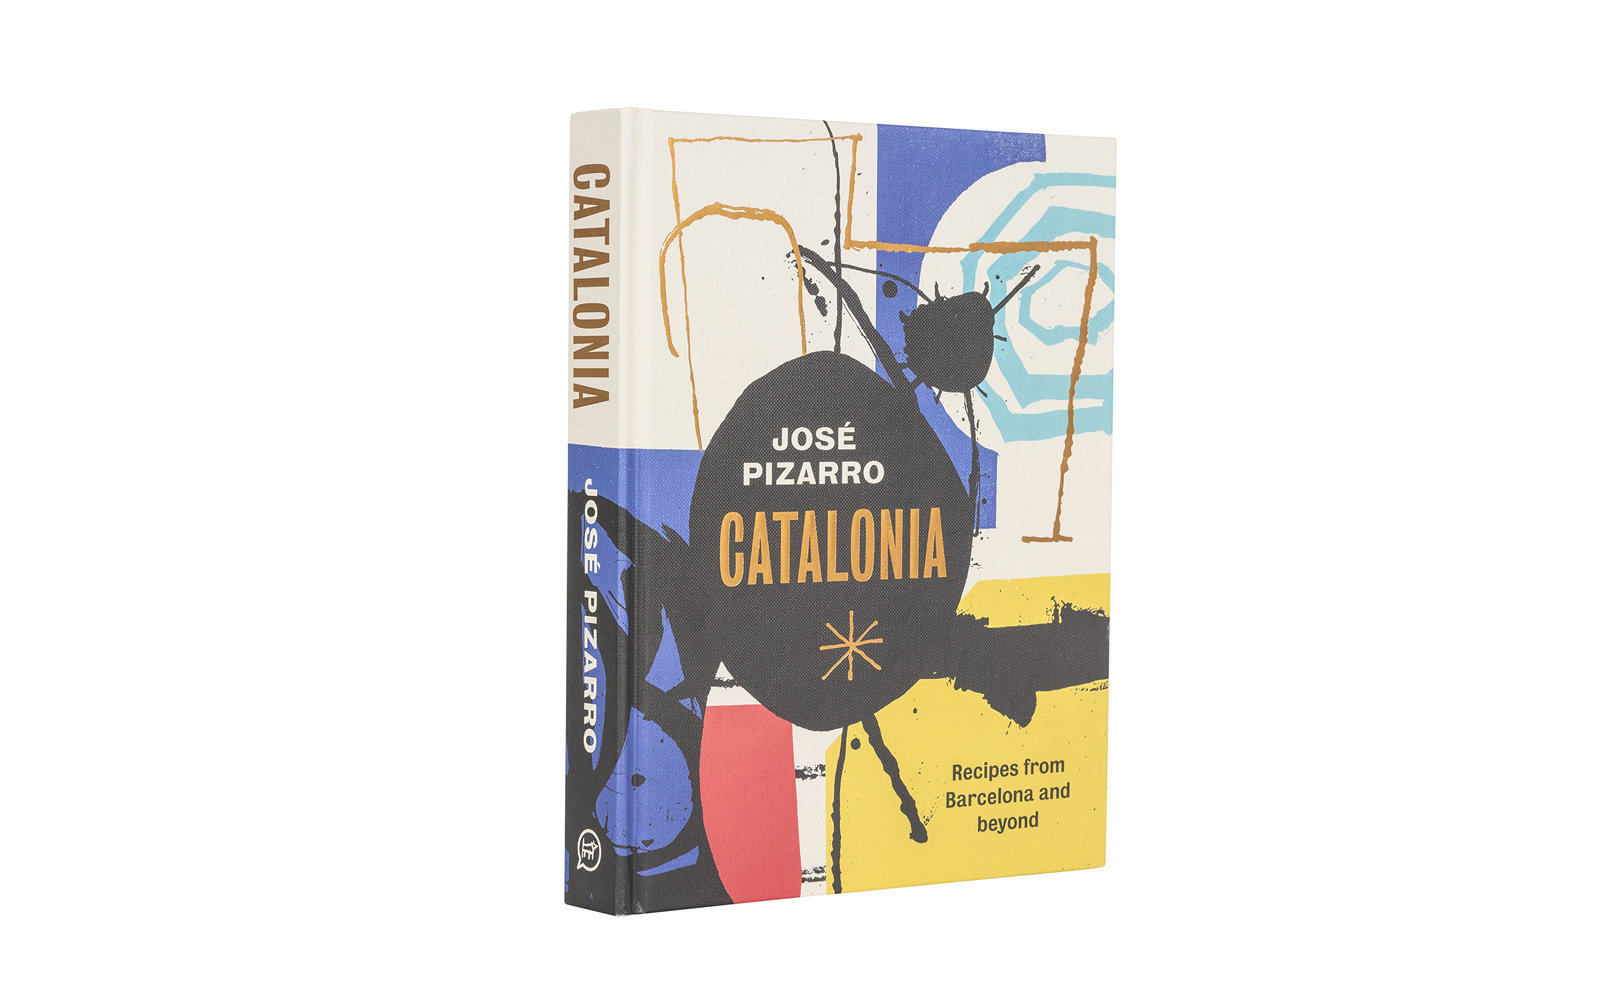 Catalonia, by Jose Pizarro